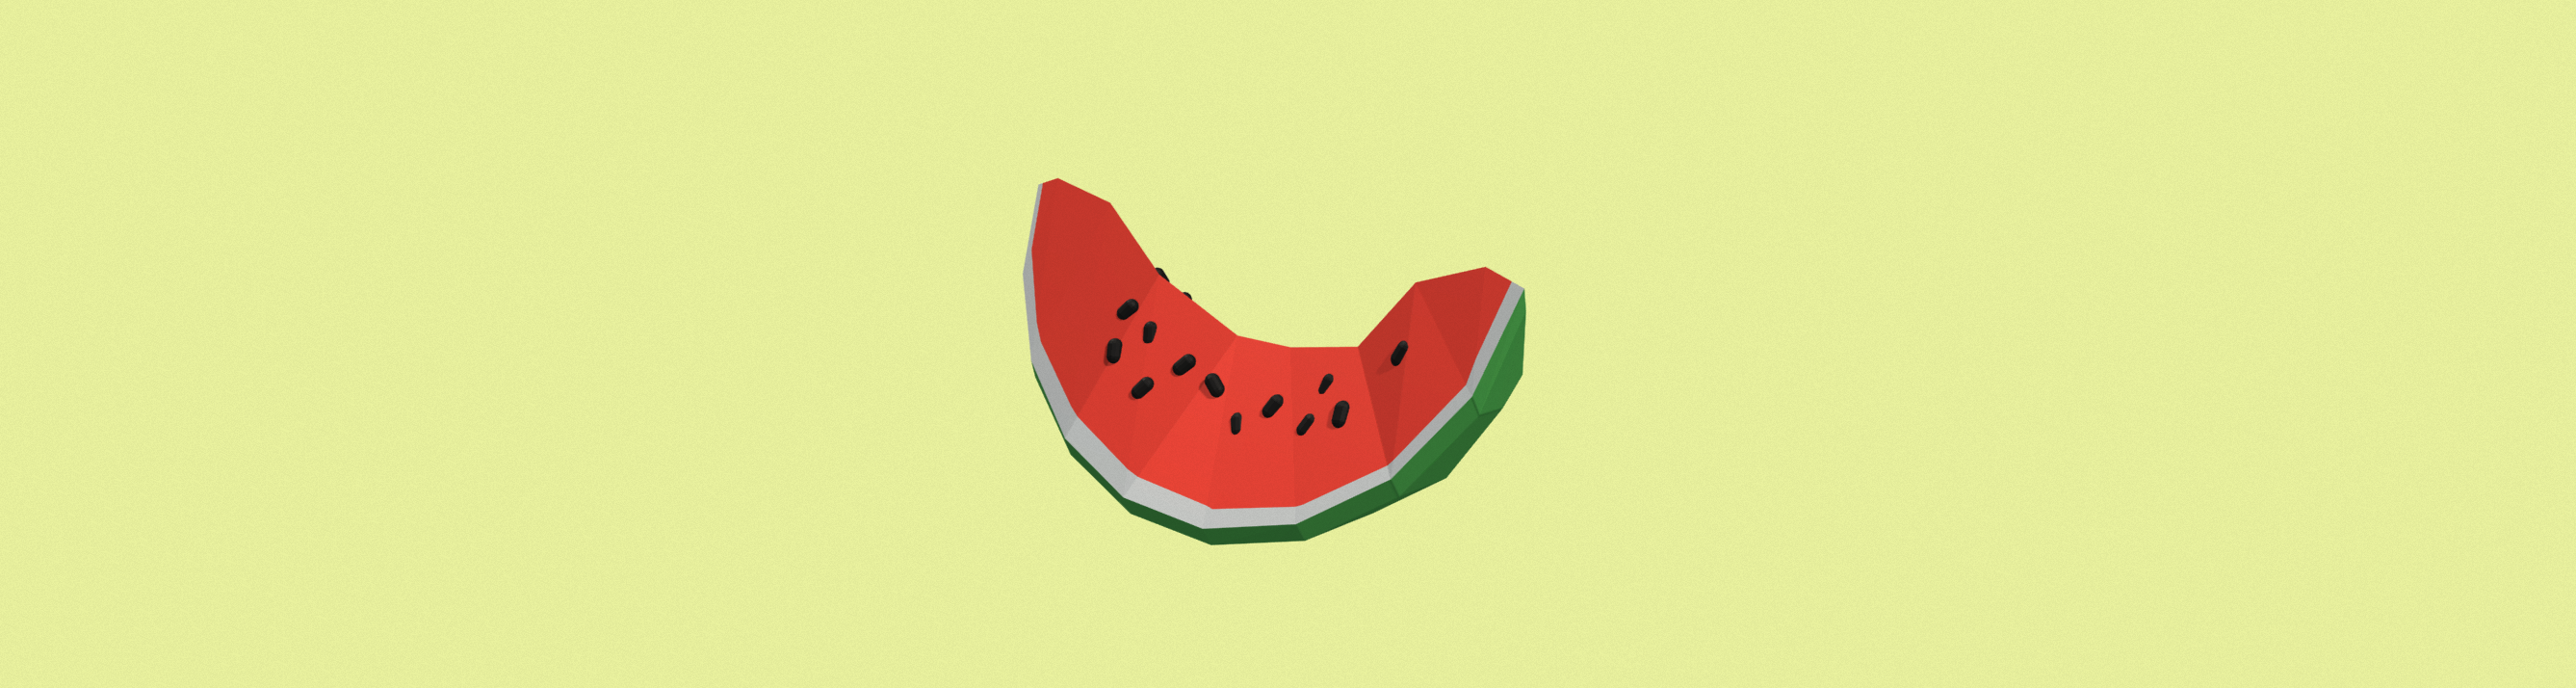 Slice of Watermelon, Jarlan Perez